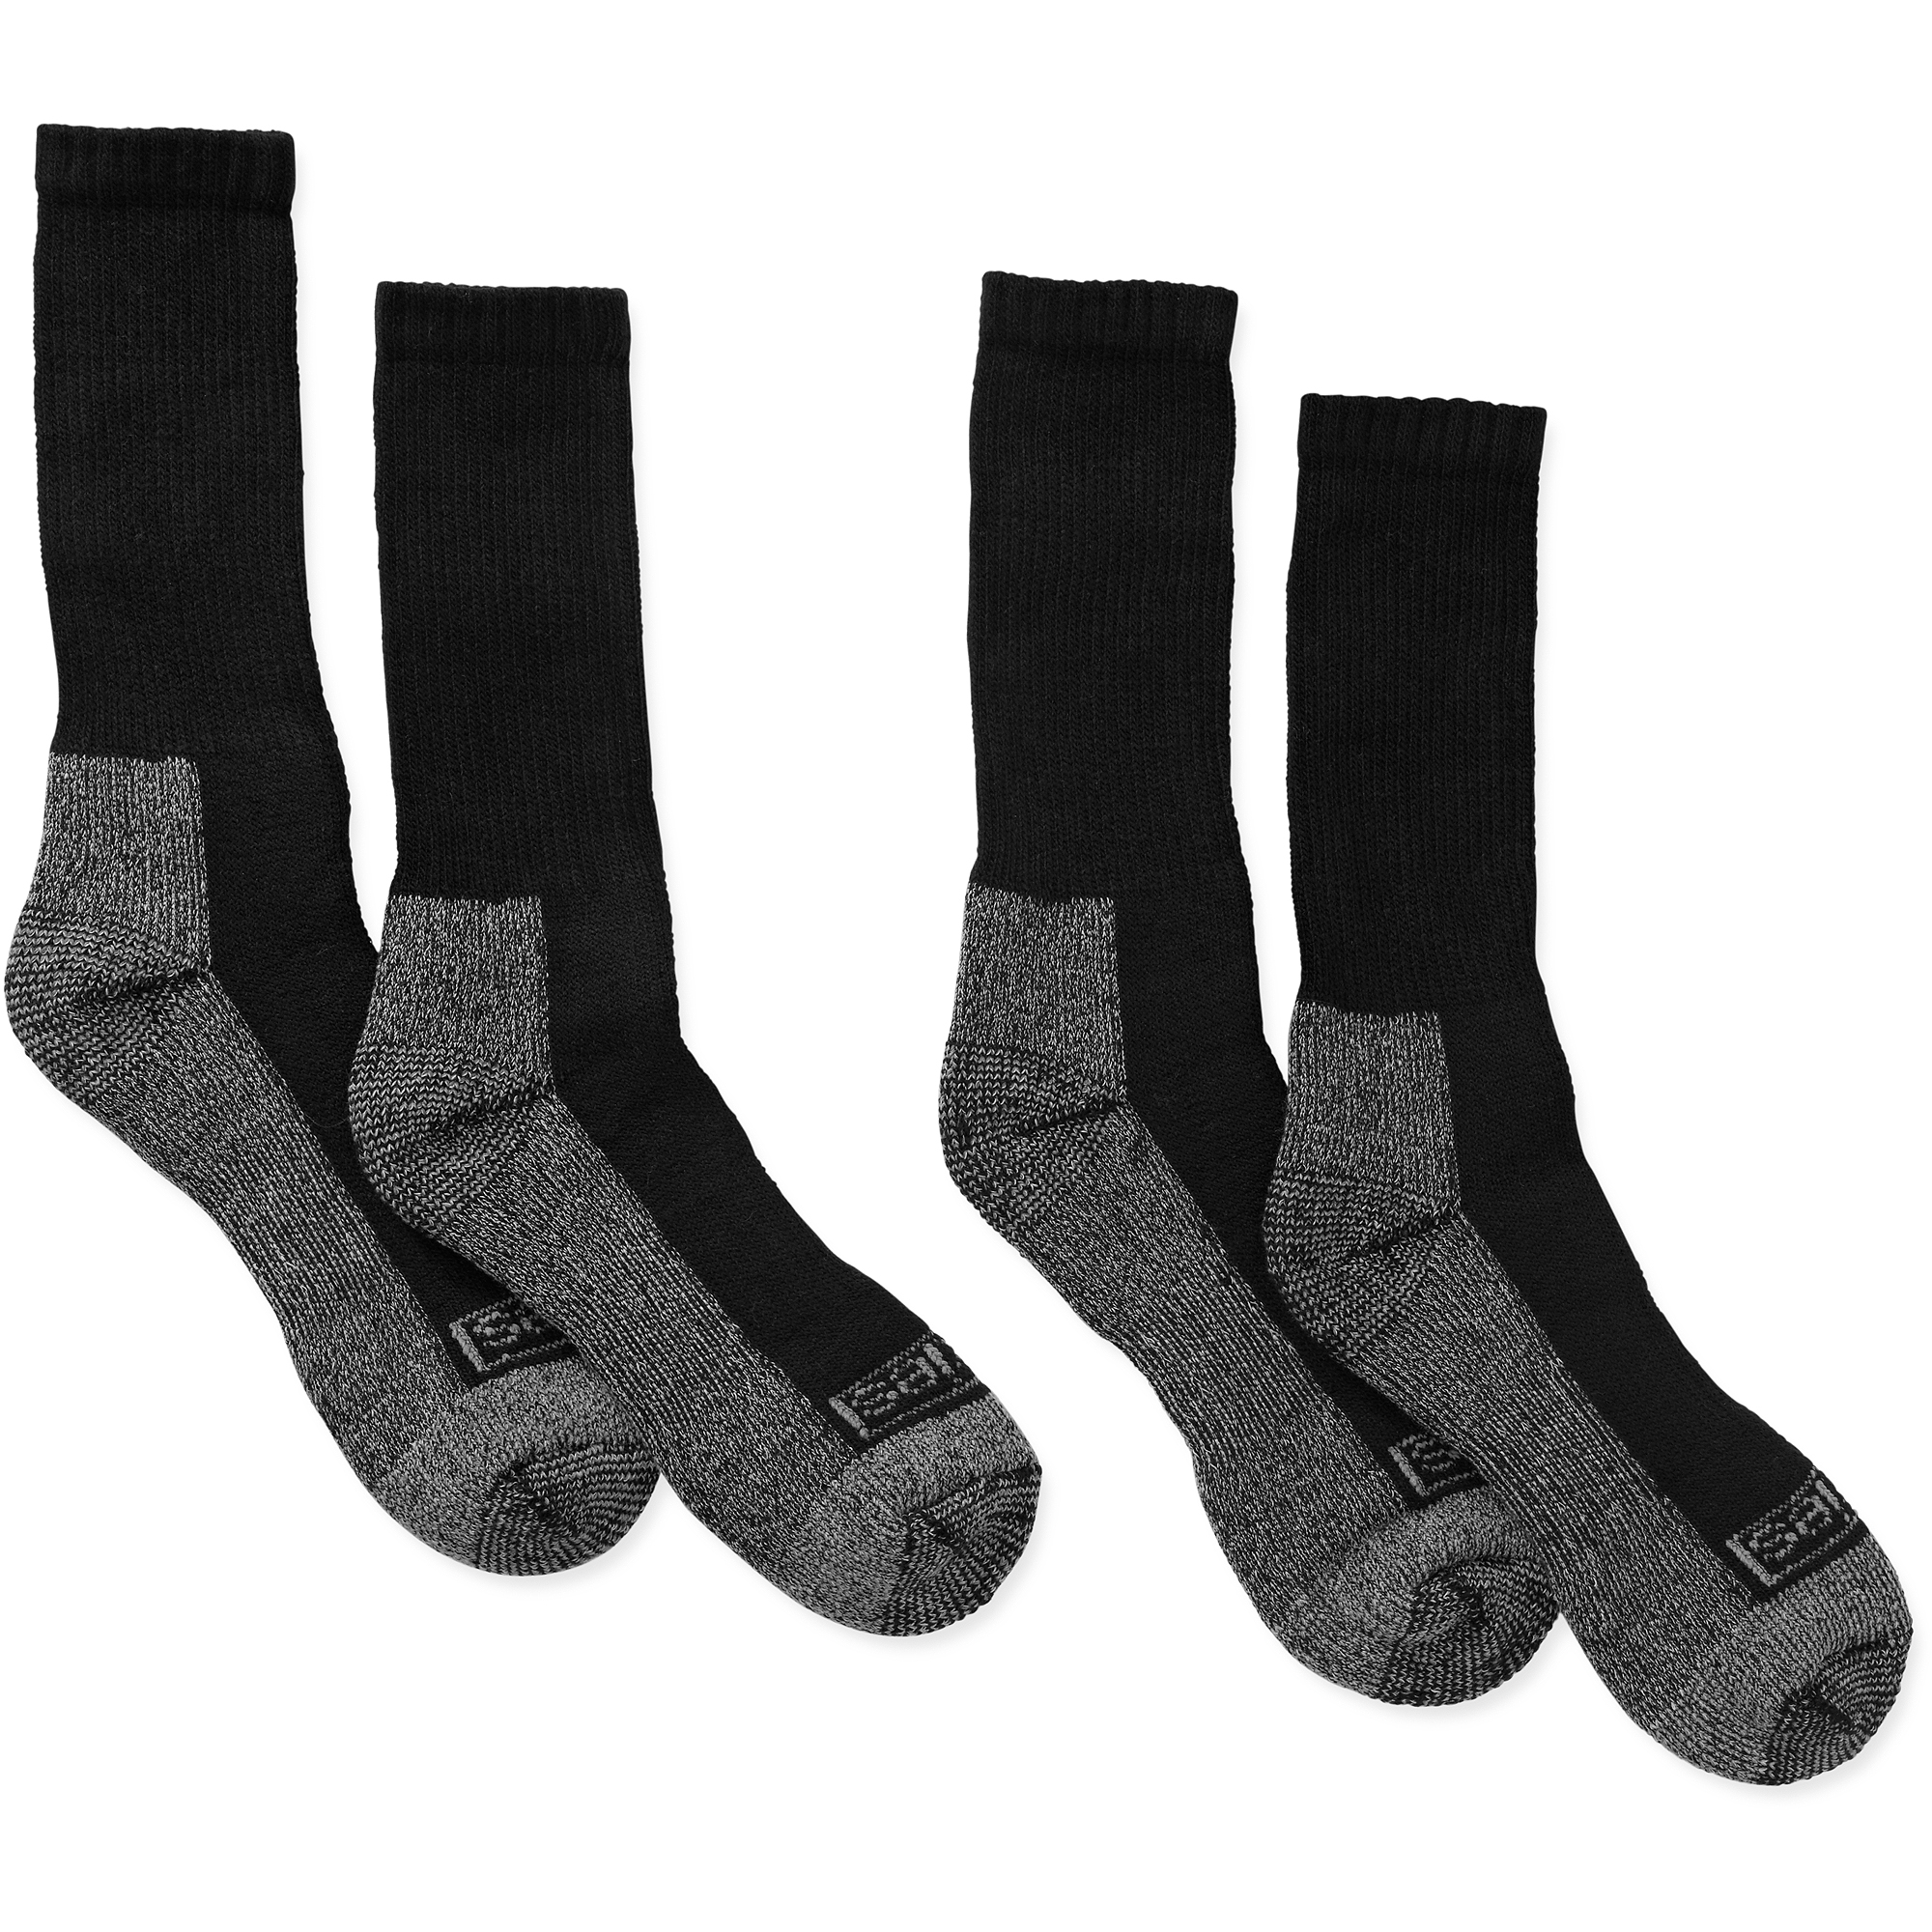 Men's Steel Toe Crew Socks, 2-Pack